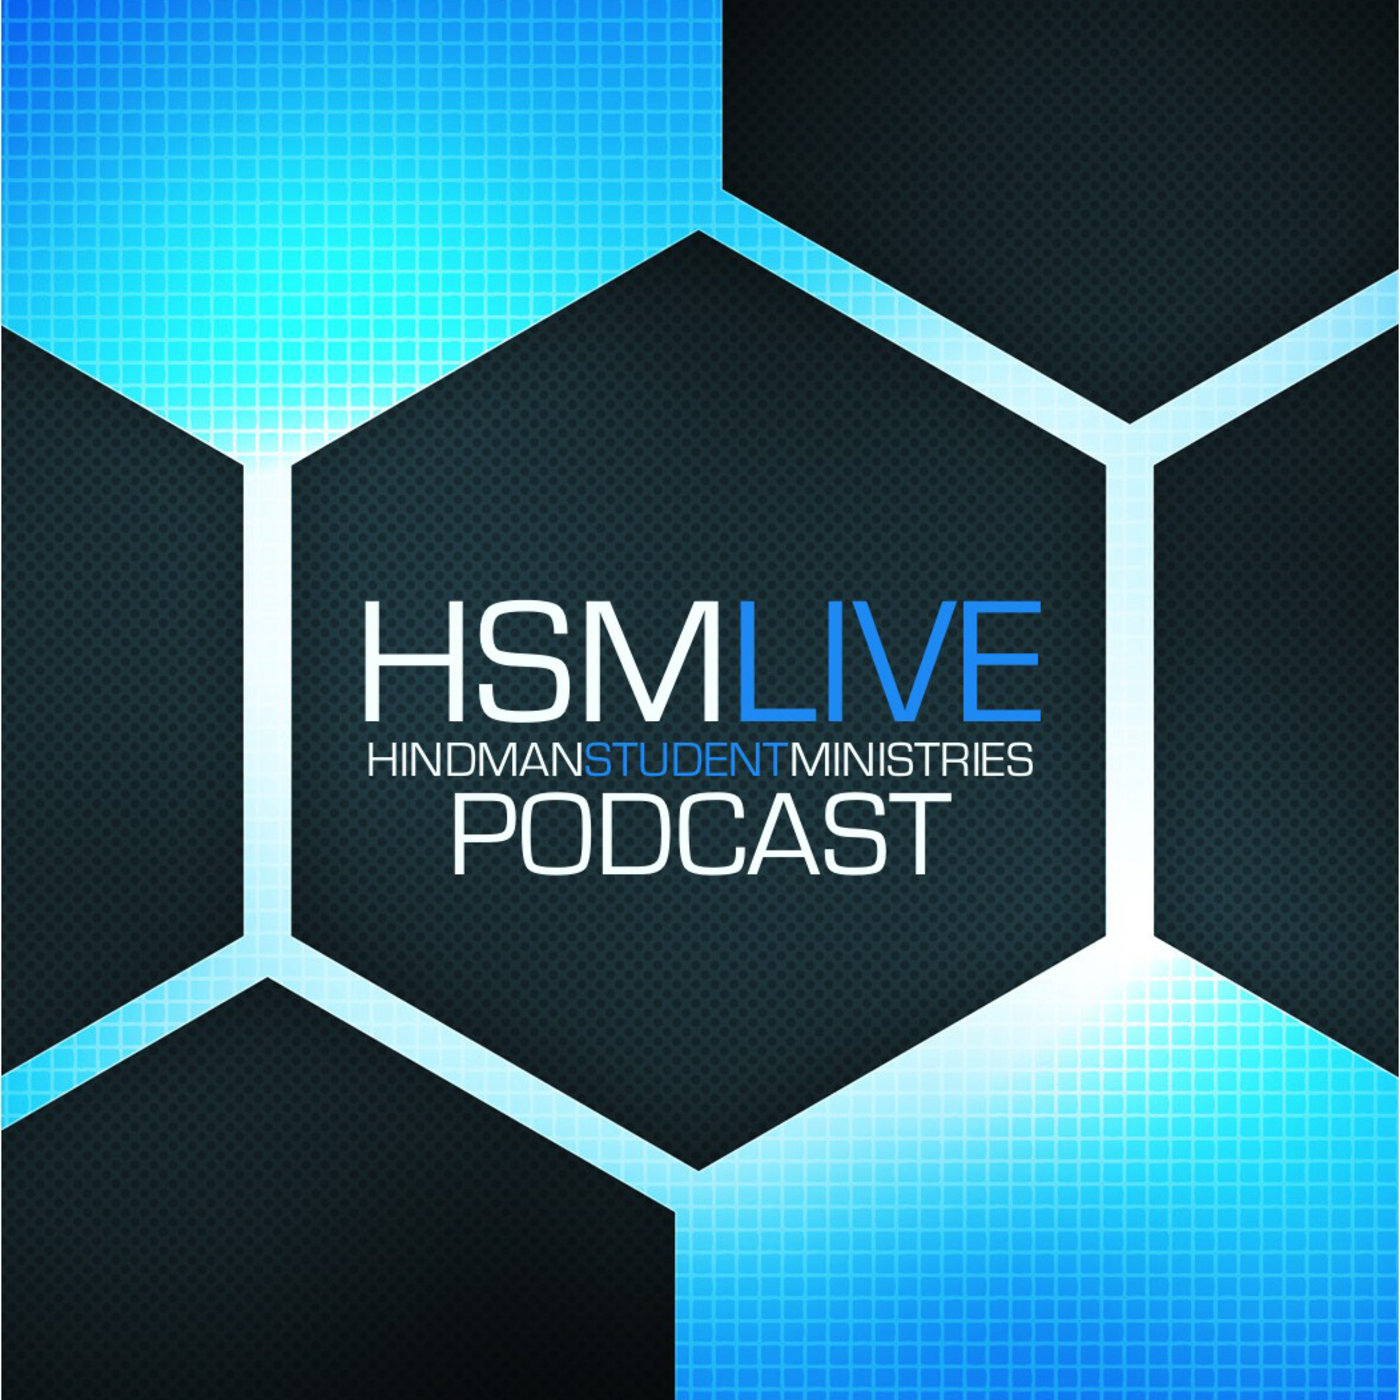 HSM LIVE Podcast: Hindman Student Ministries